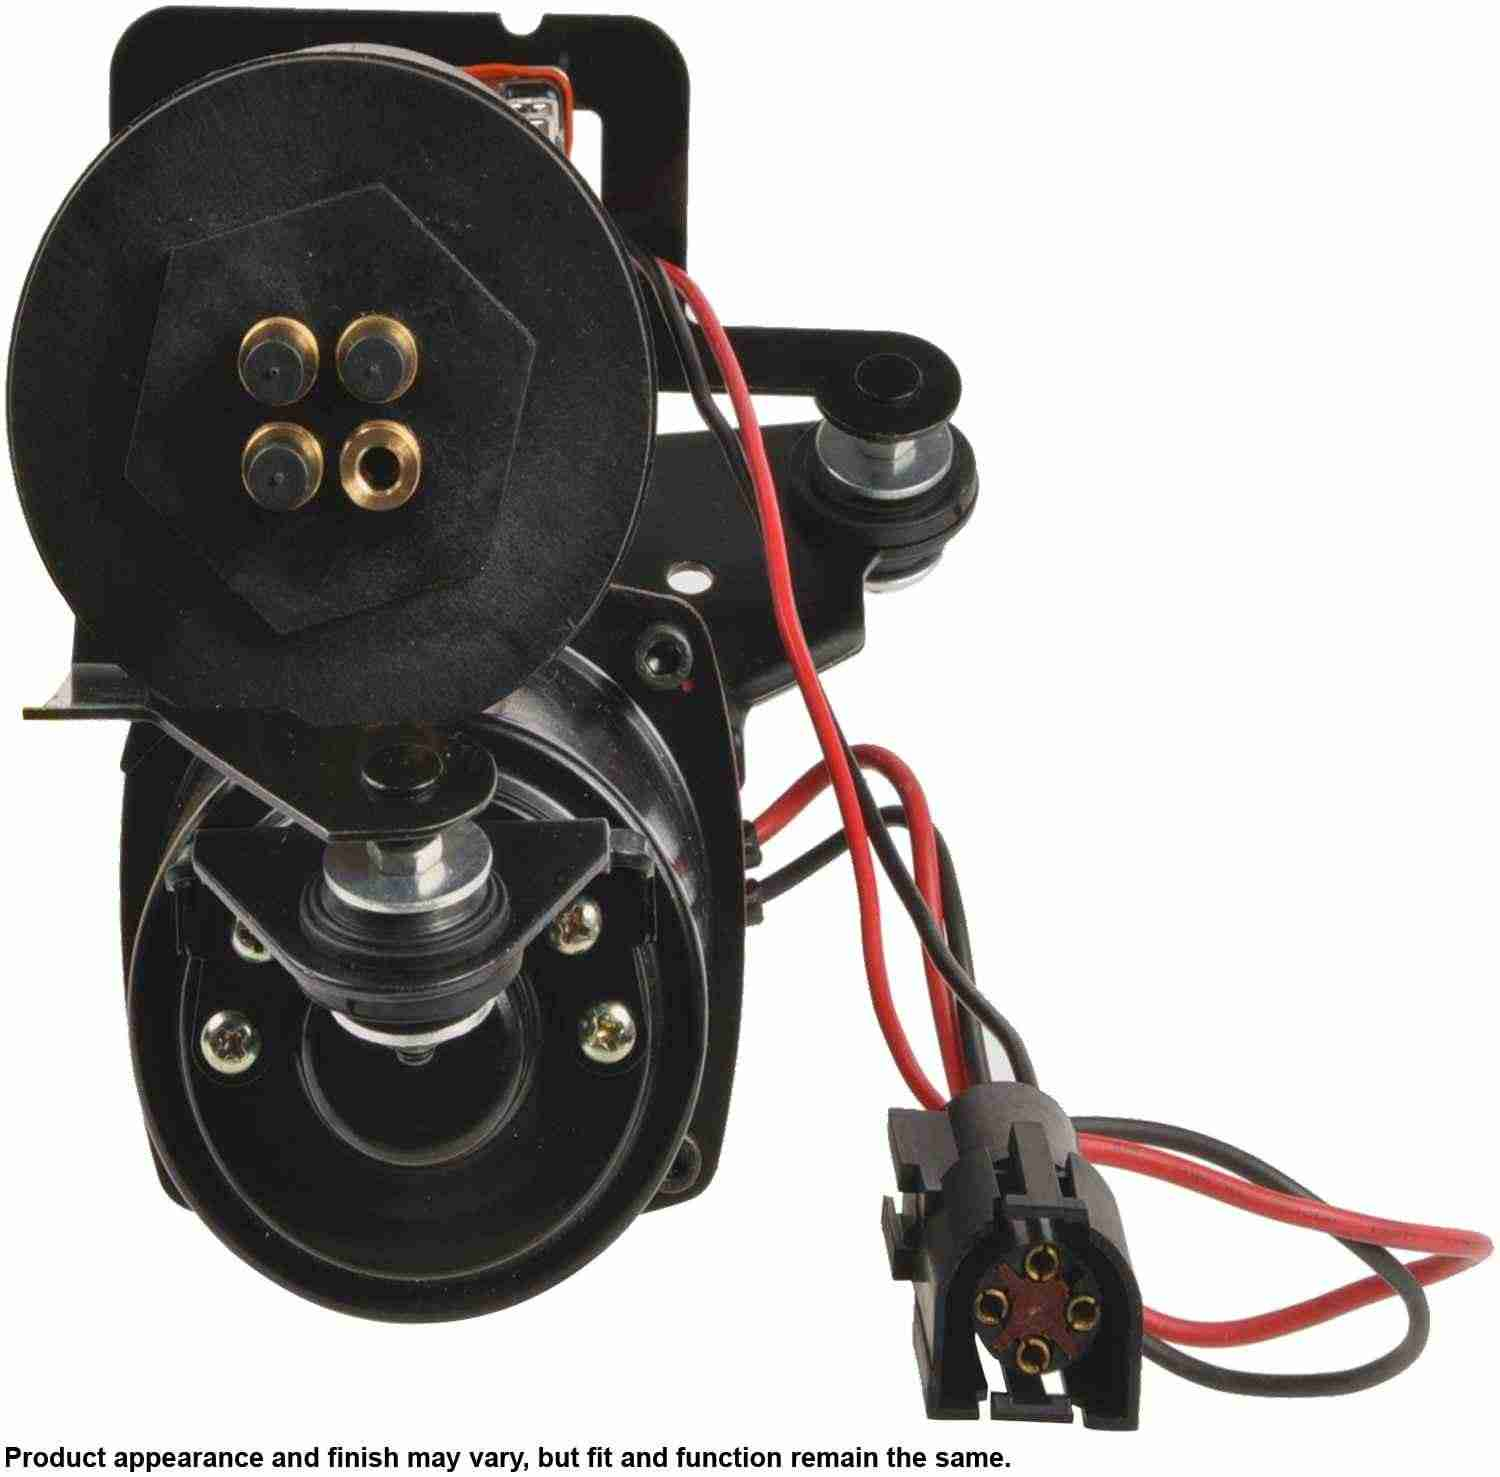 CARDONE/A-1 CARDONE - CARDONE Suspension Air Compressor - A1C 4J-1002C